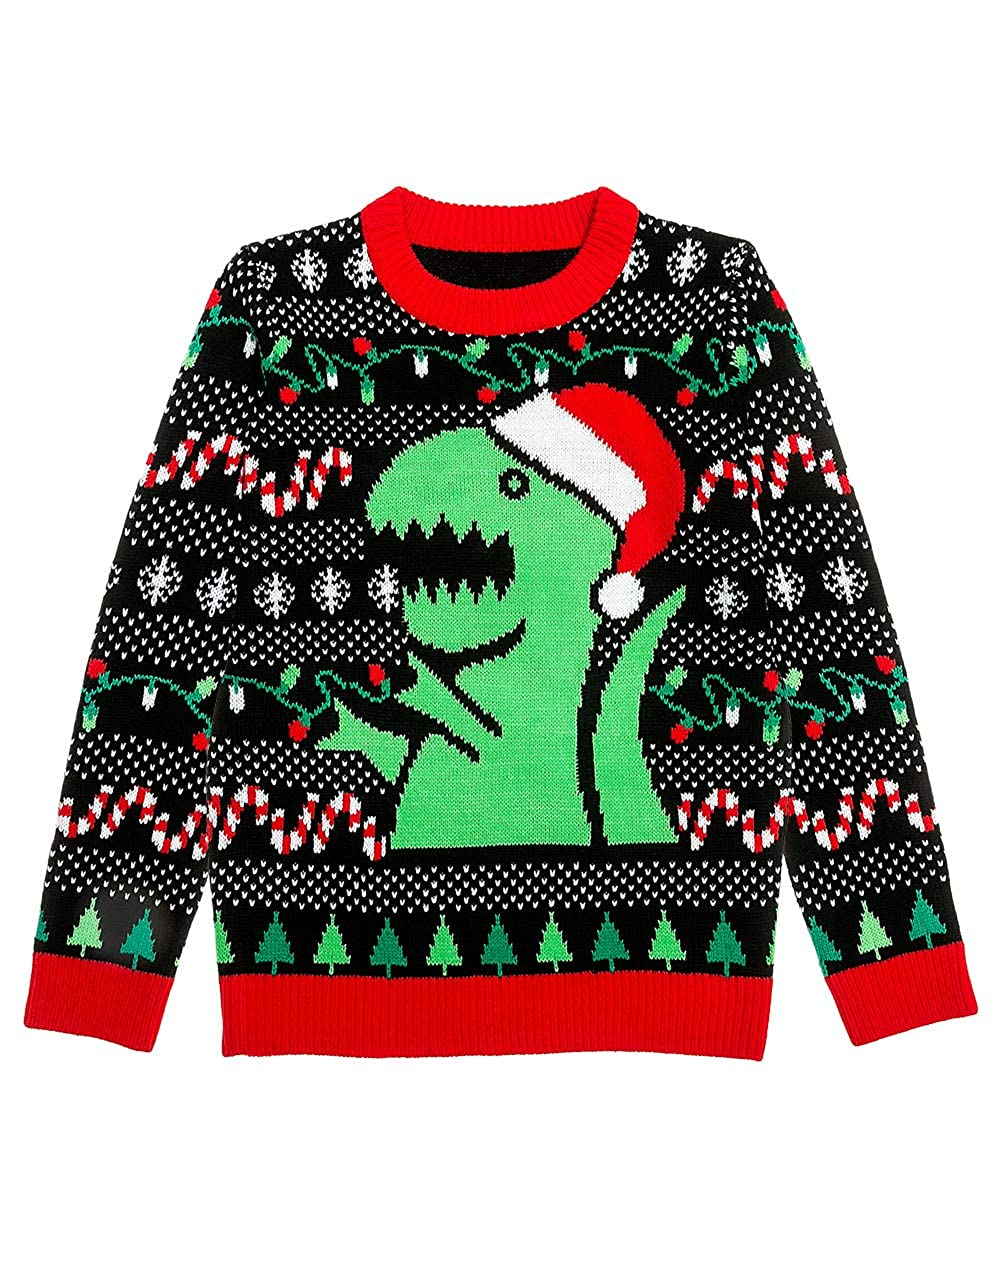 Big Trex Santa Ugly Christmas Sweater - ToddlerBoys 2y - 6y Funny Outfit GaMPt0tg5d